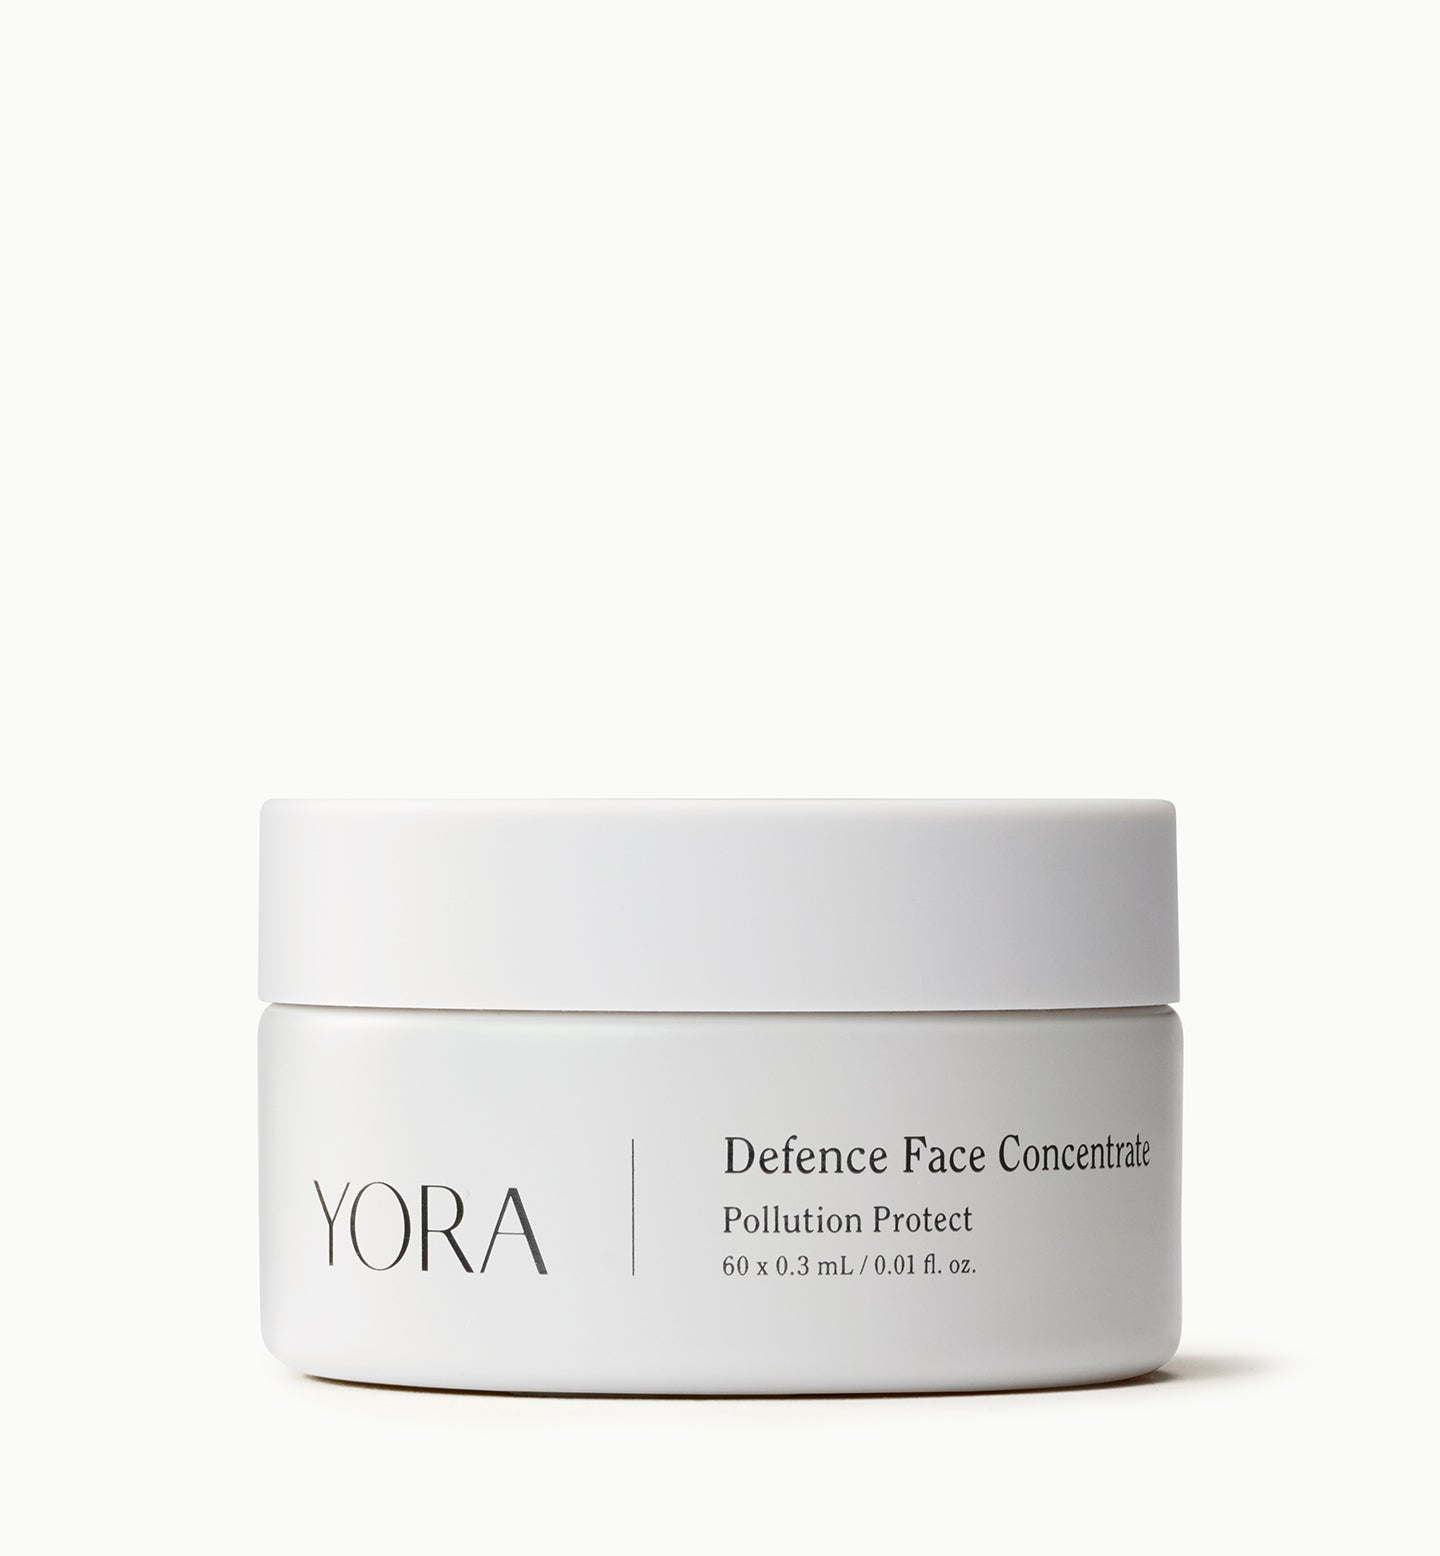 Defence Face Concentrate - Front